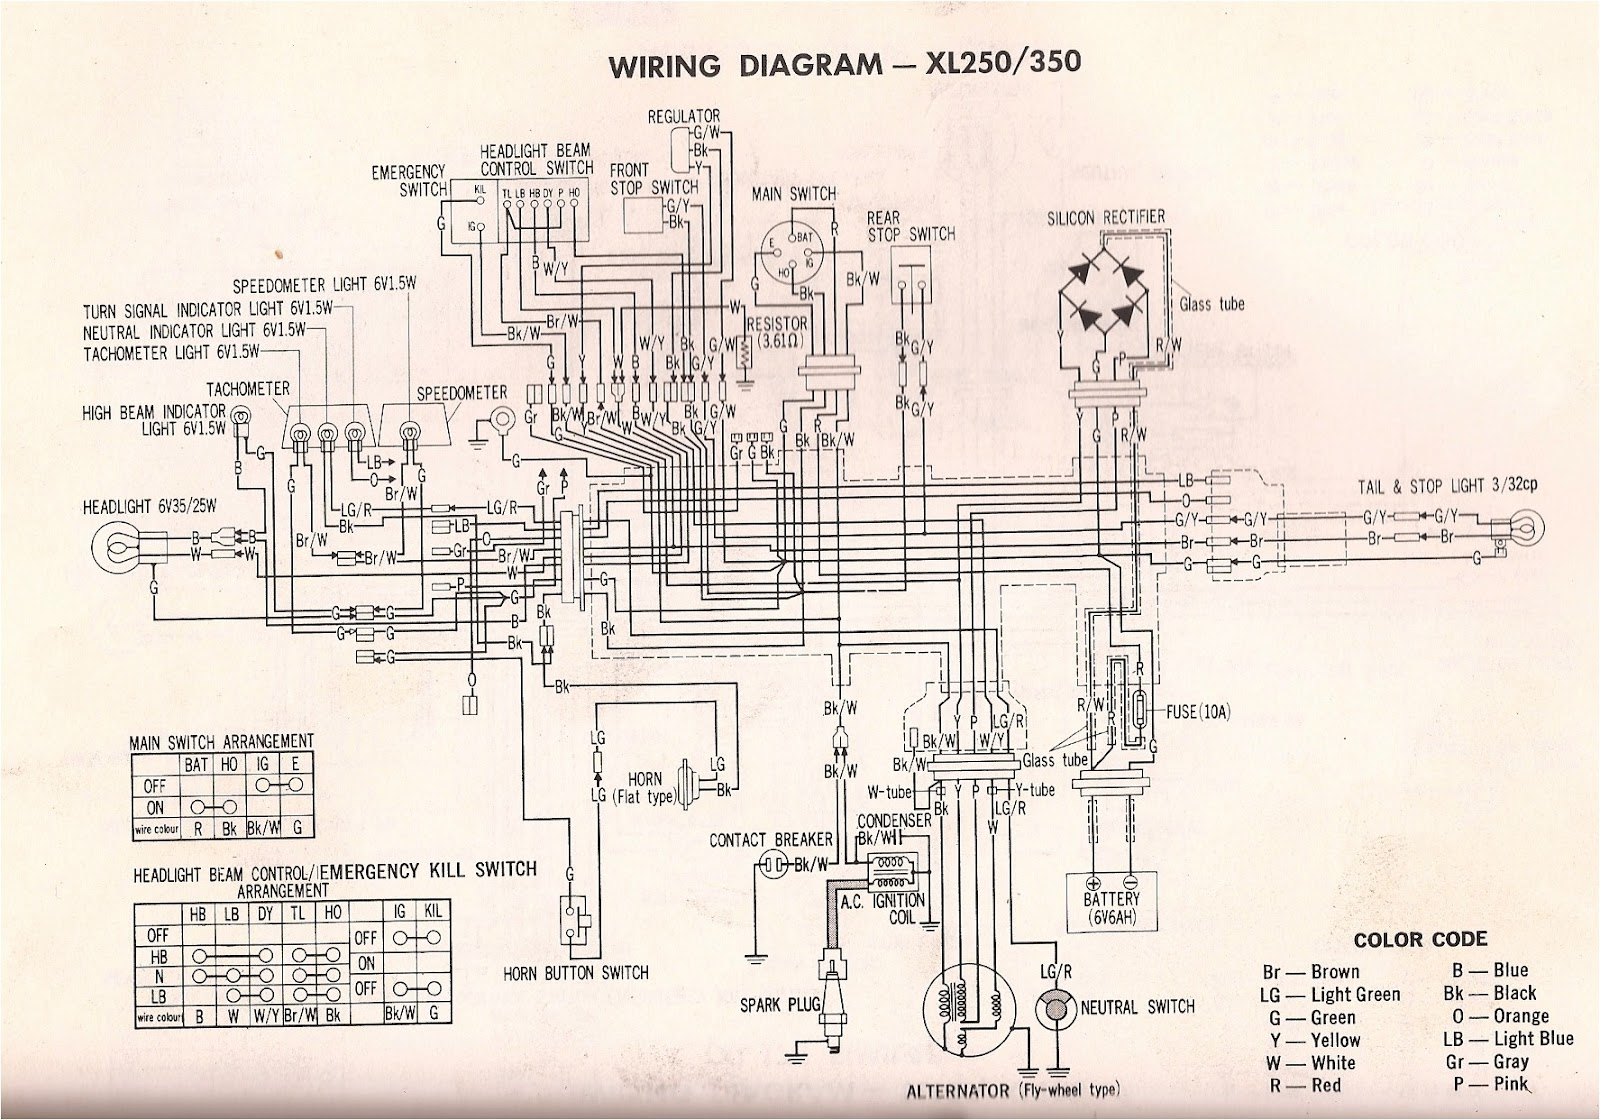 XL350+Wiring+diagram+S r4l xl350 wiring diagram (and xl250) Kawasaki G5 Wiring-Diagram at fashall.co